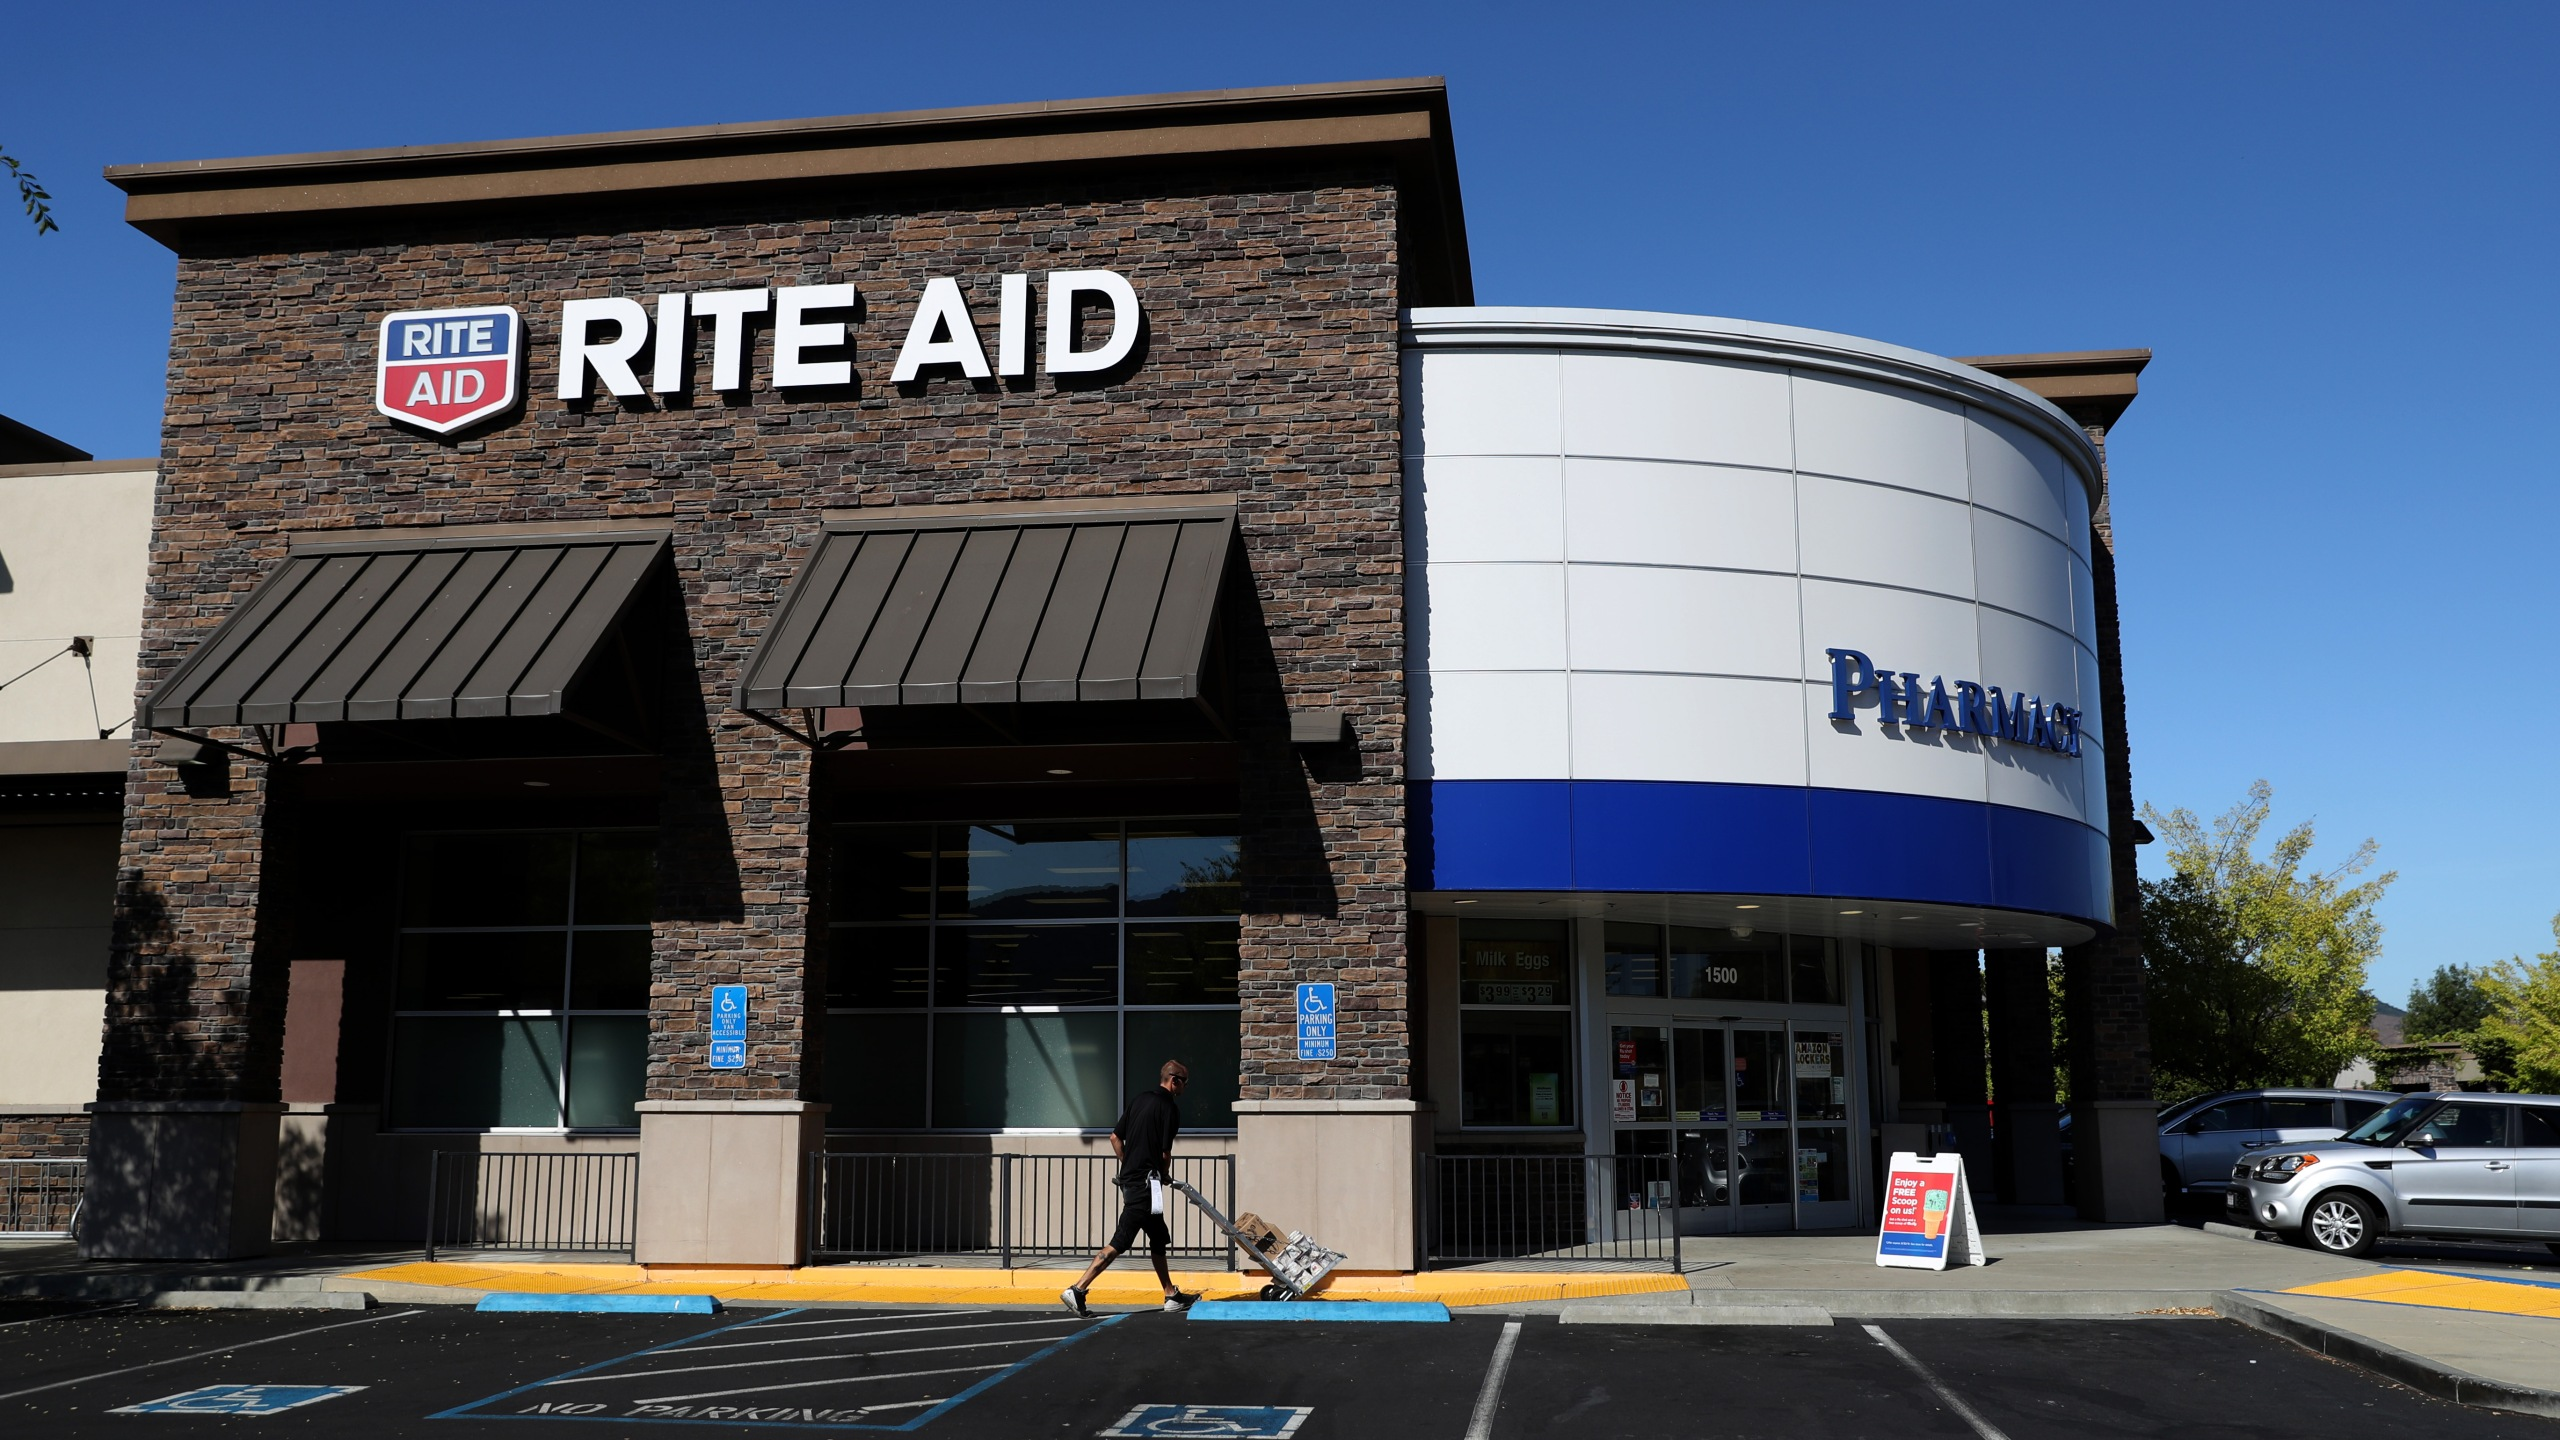 The Rite Aid logo is displayed on the exterior of a Rite Aid pharmacy on September 26, 2019 in San Rafael, California. (Credit: Justin Sullivan/Getty Images)